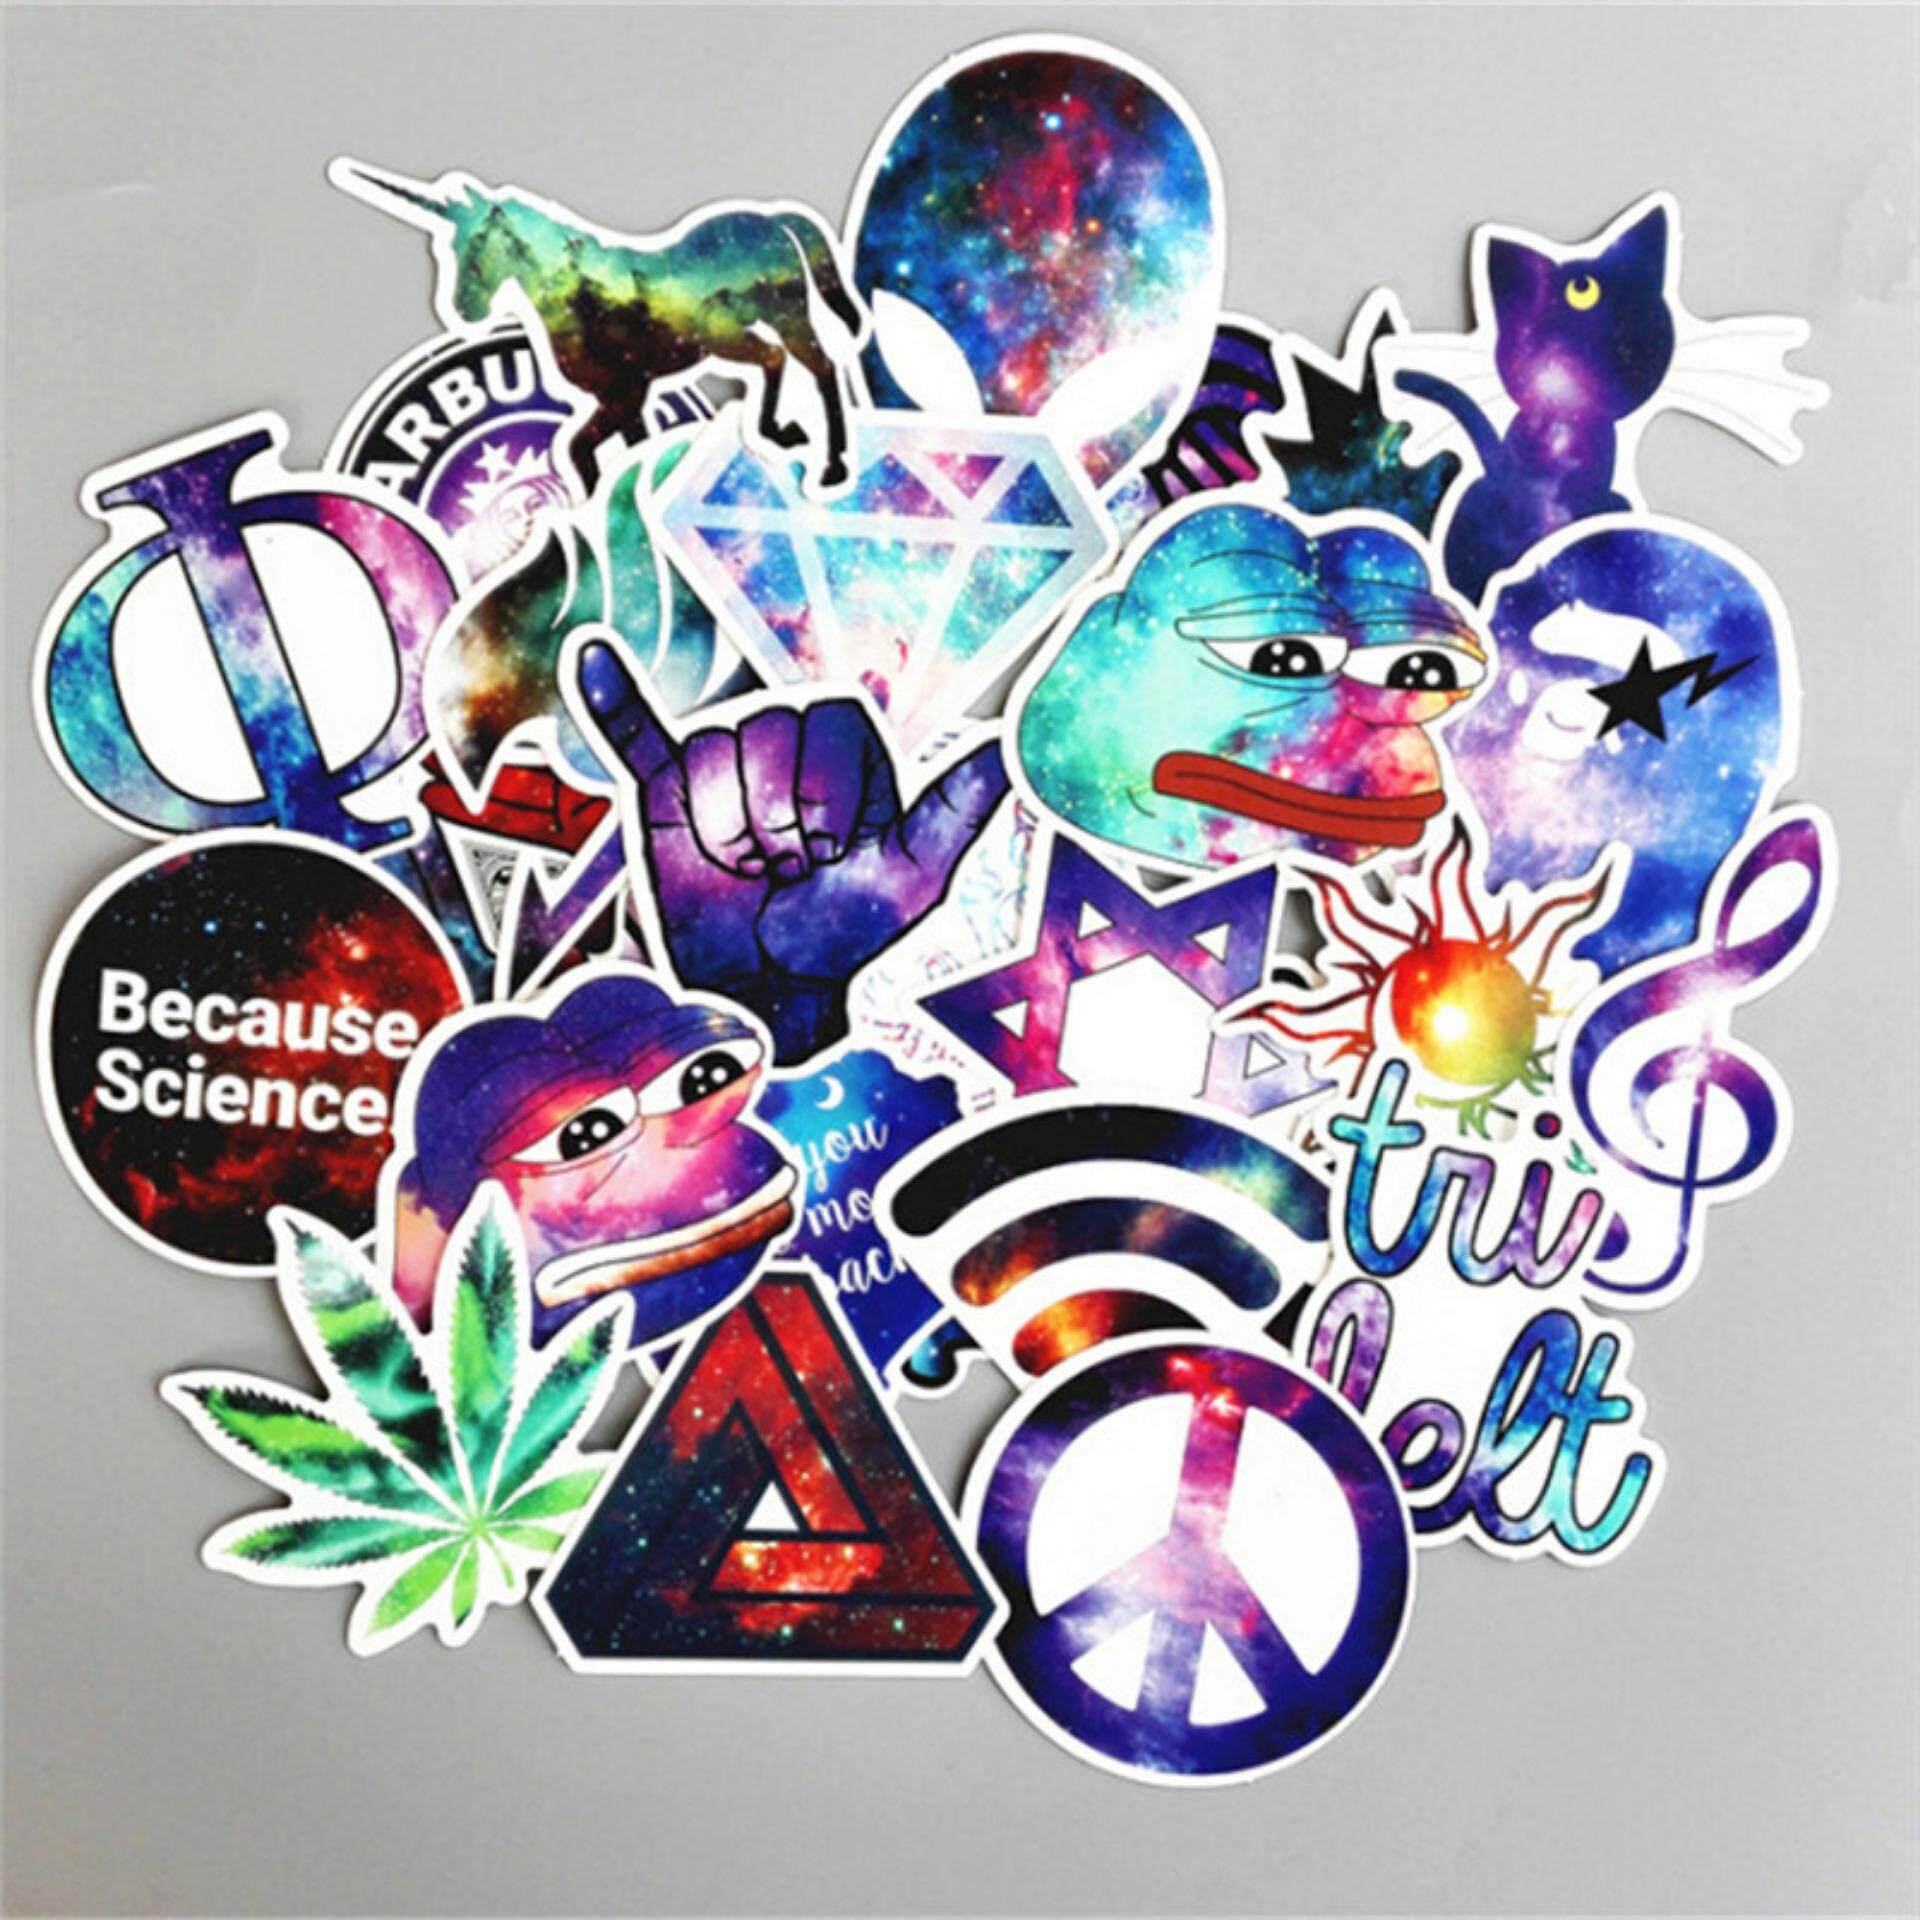 Sissi 28pcs Galaxy Stickers Mixed Decals Luggage Laptop Car Book Waterproof Sticker By Sissi Princess.